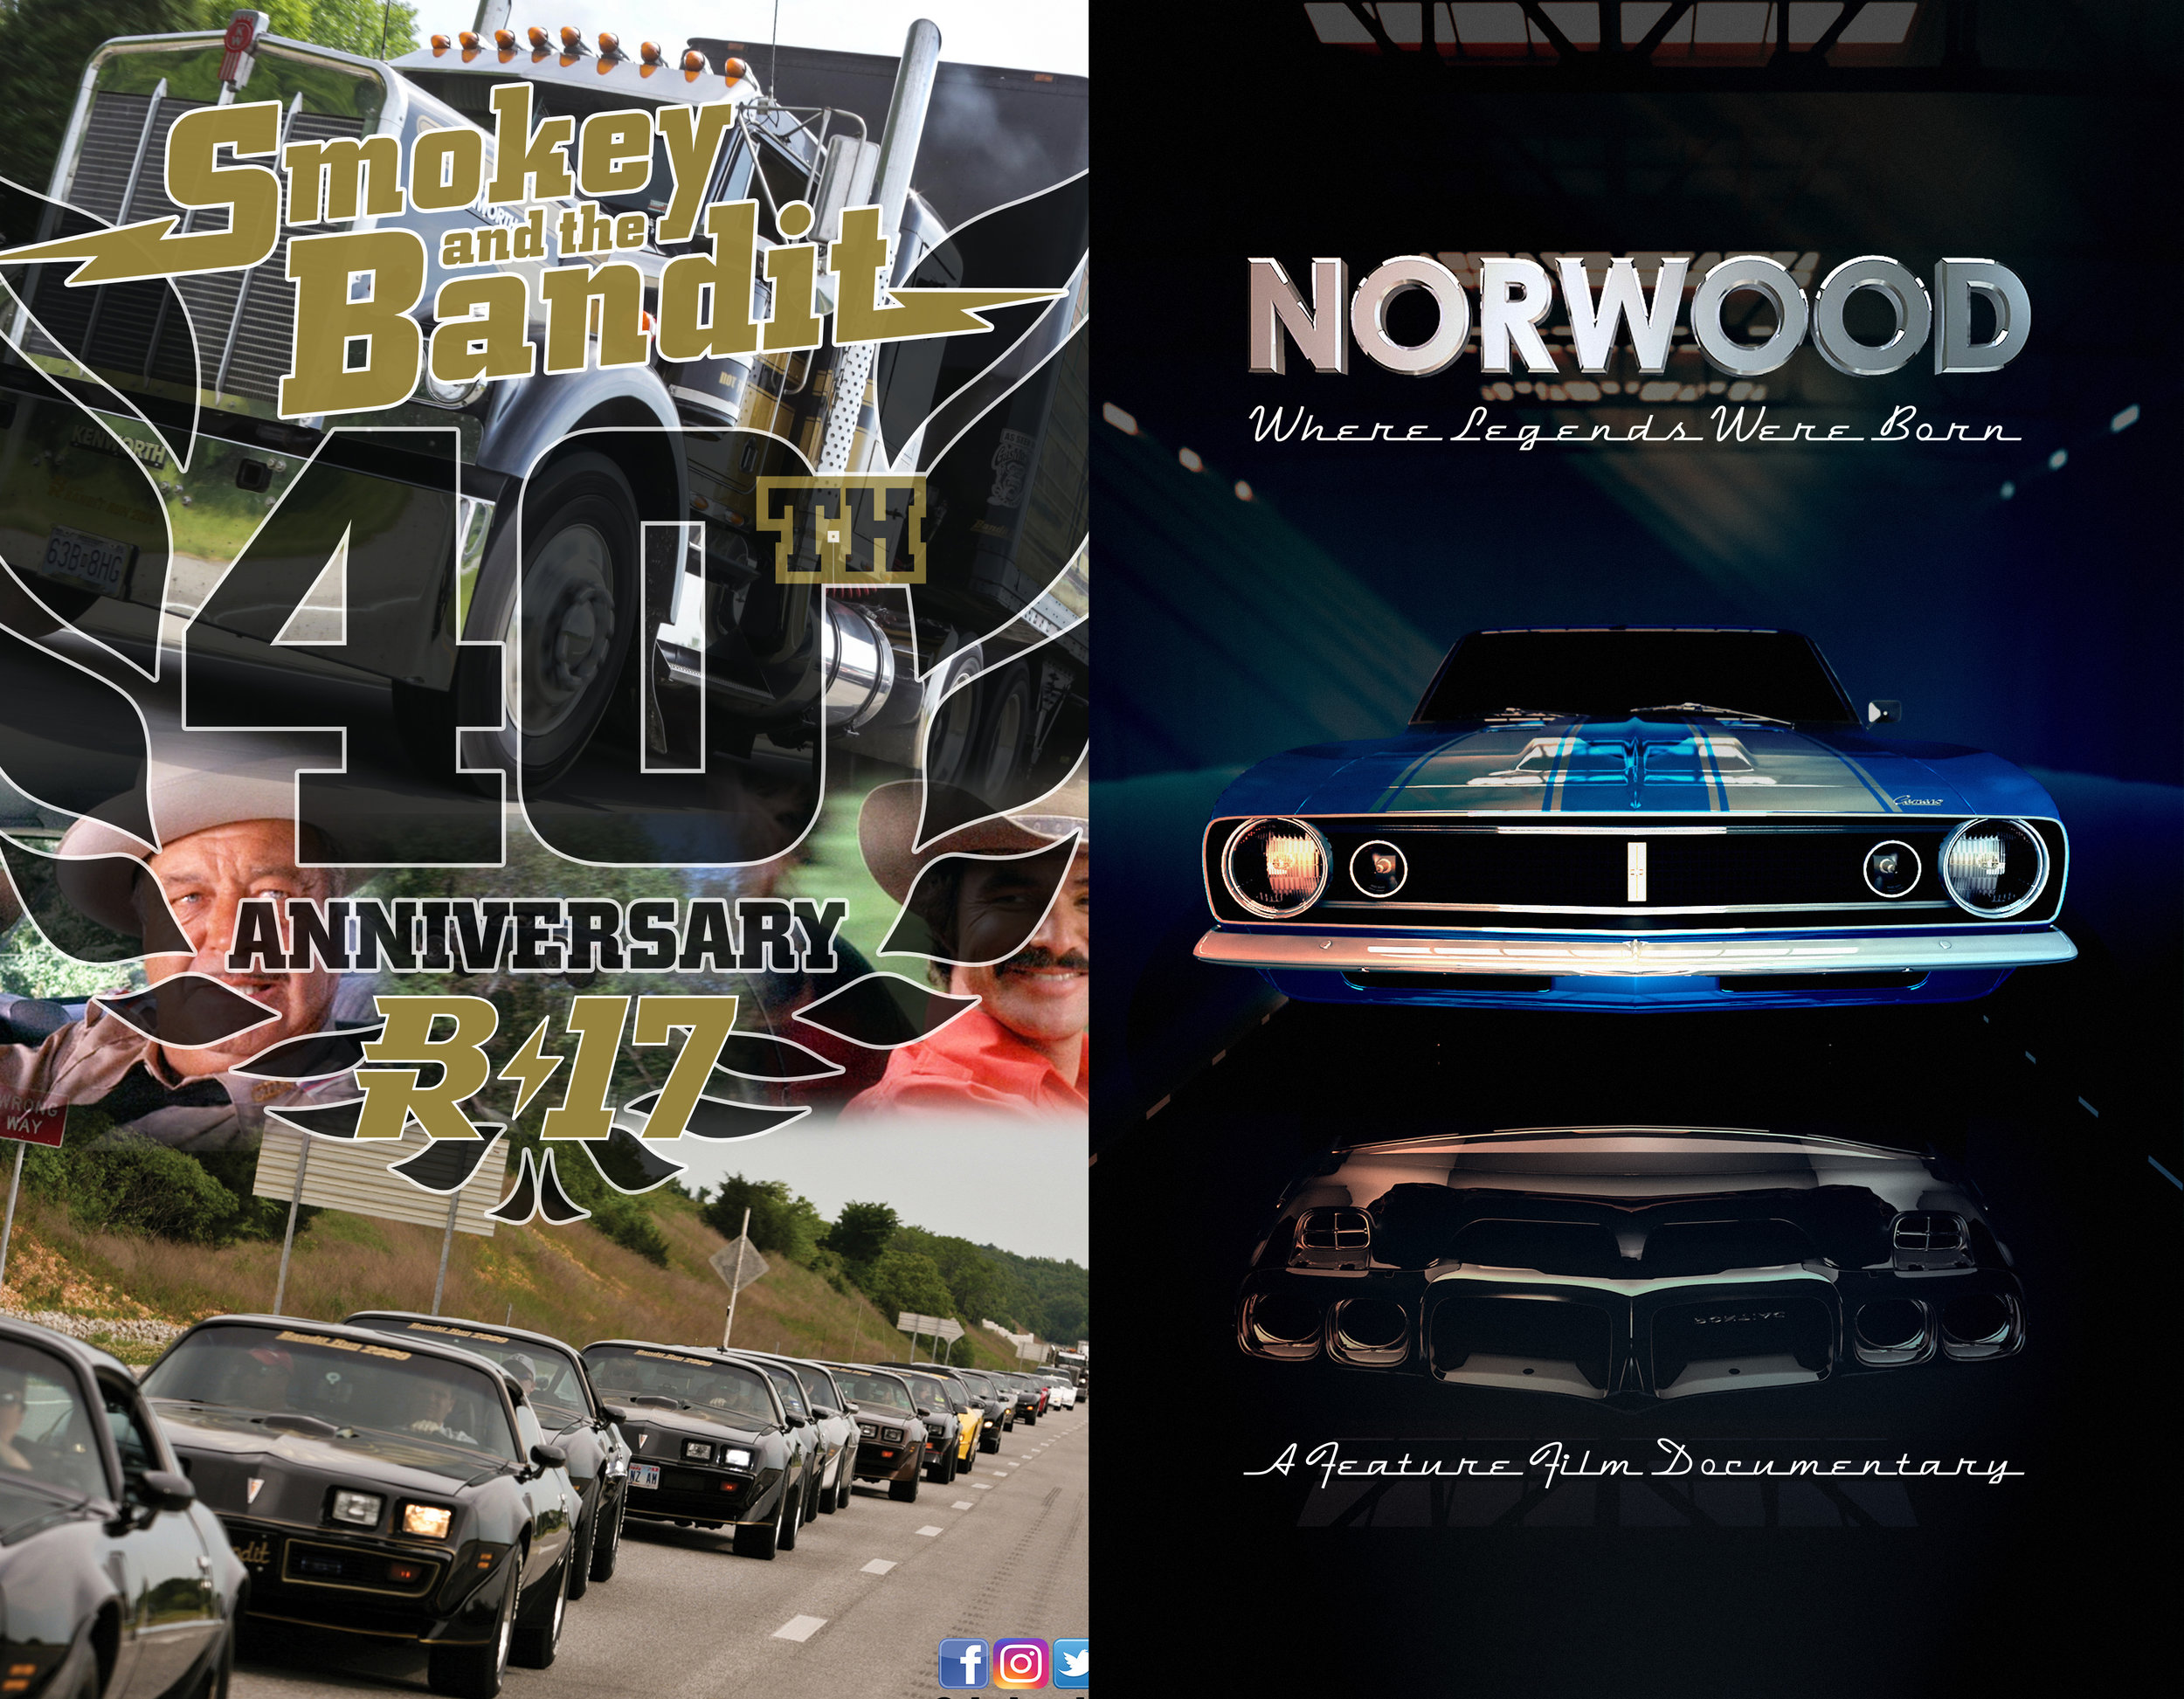 Bandit Run 2017 - Celebrating Norwood Muscle and the legacy of the Bandit!